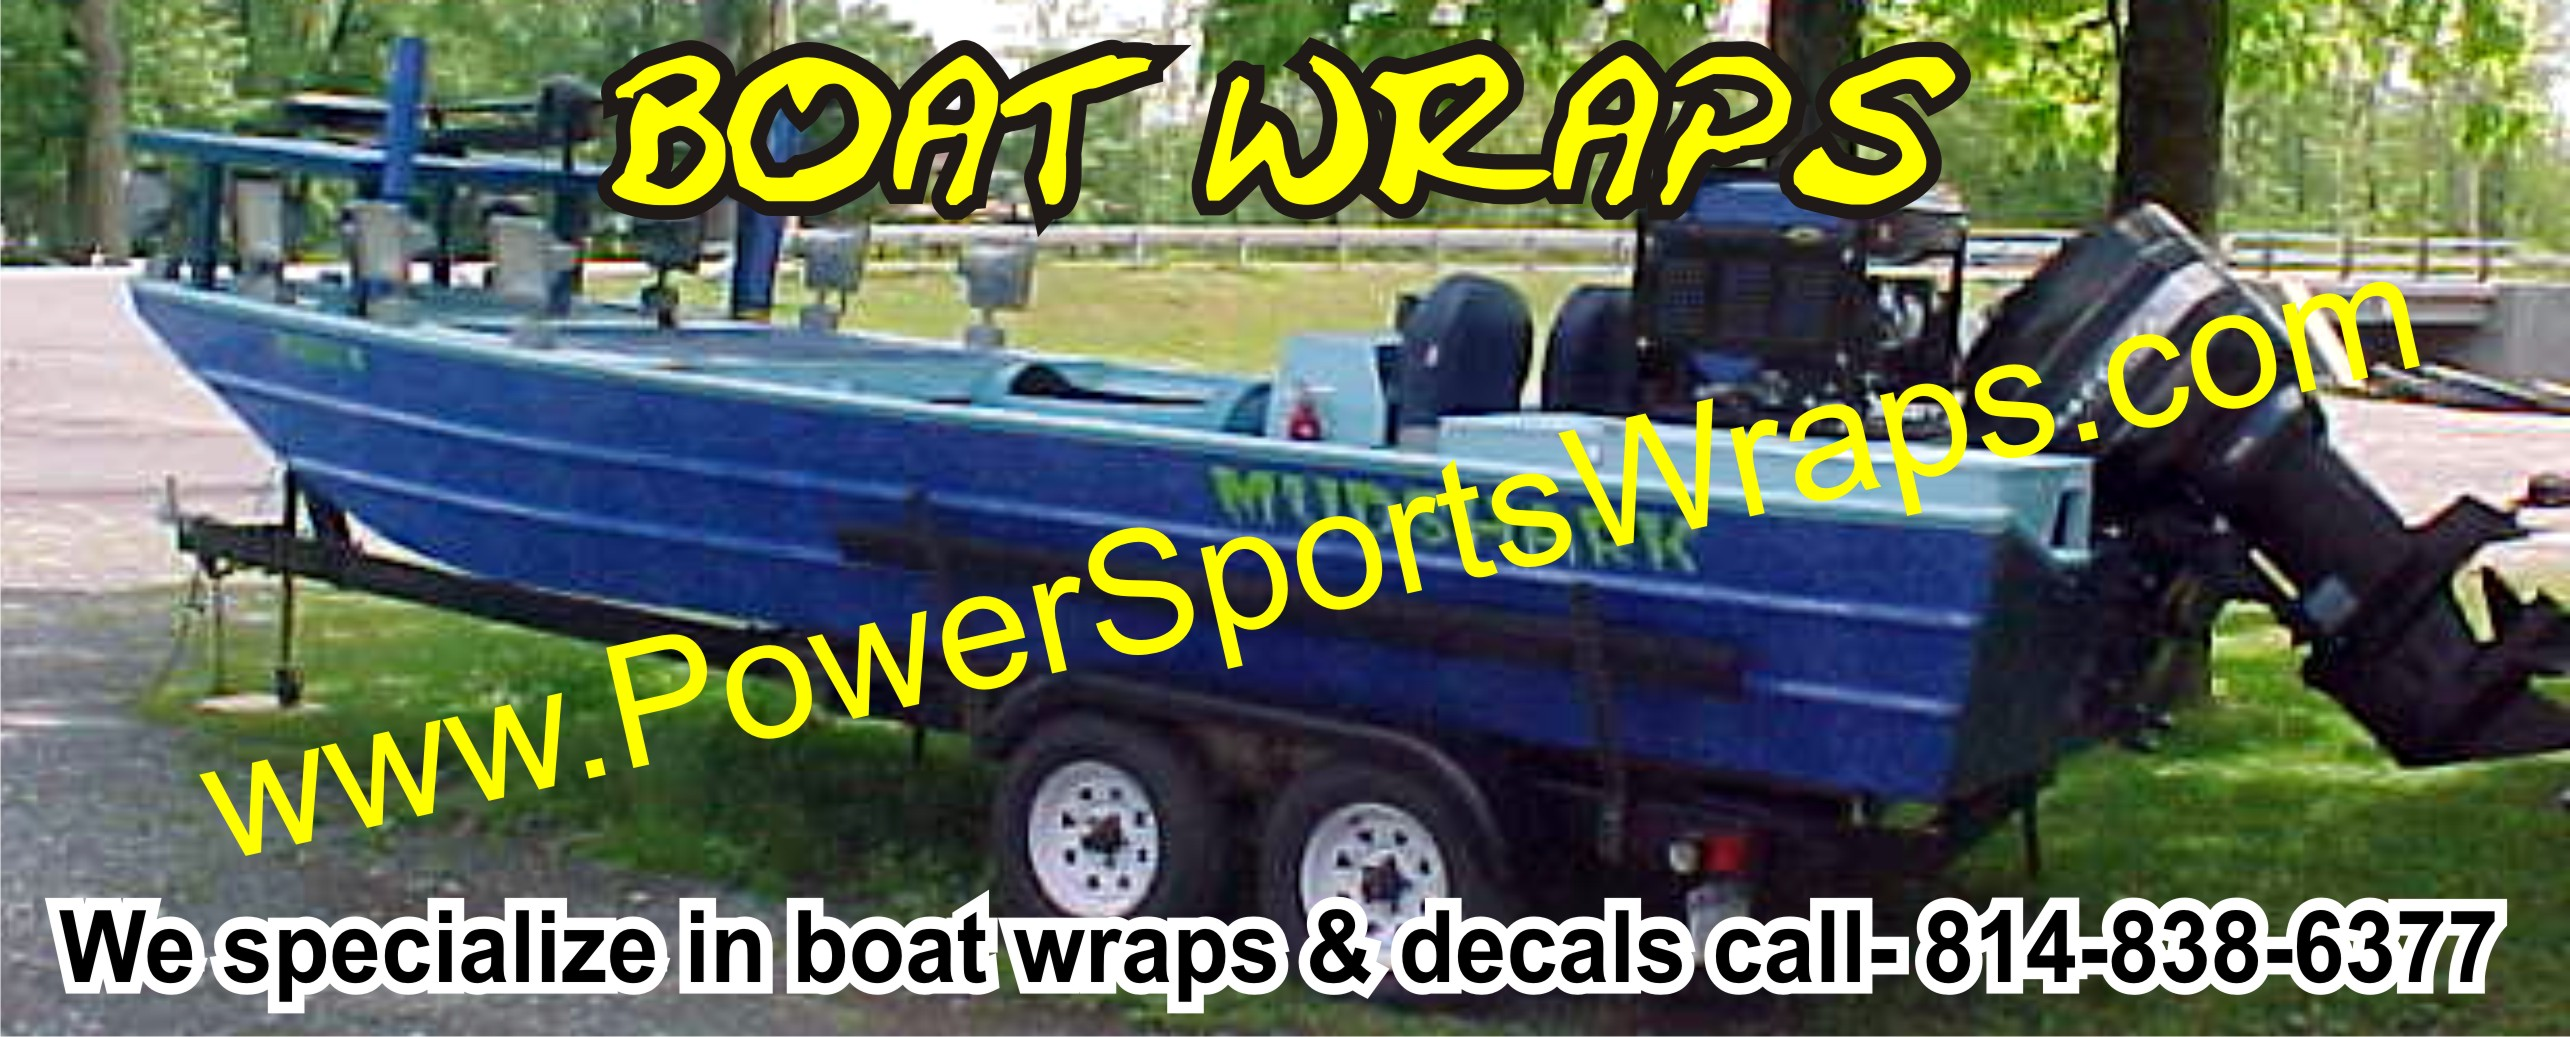 Boat wraps archives page 2 of 2 for Fishing boat decals